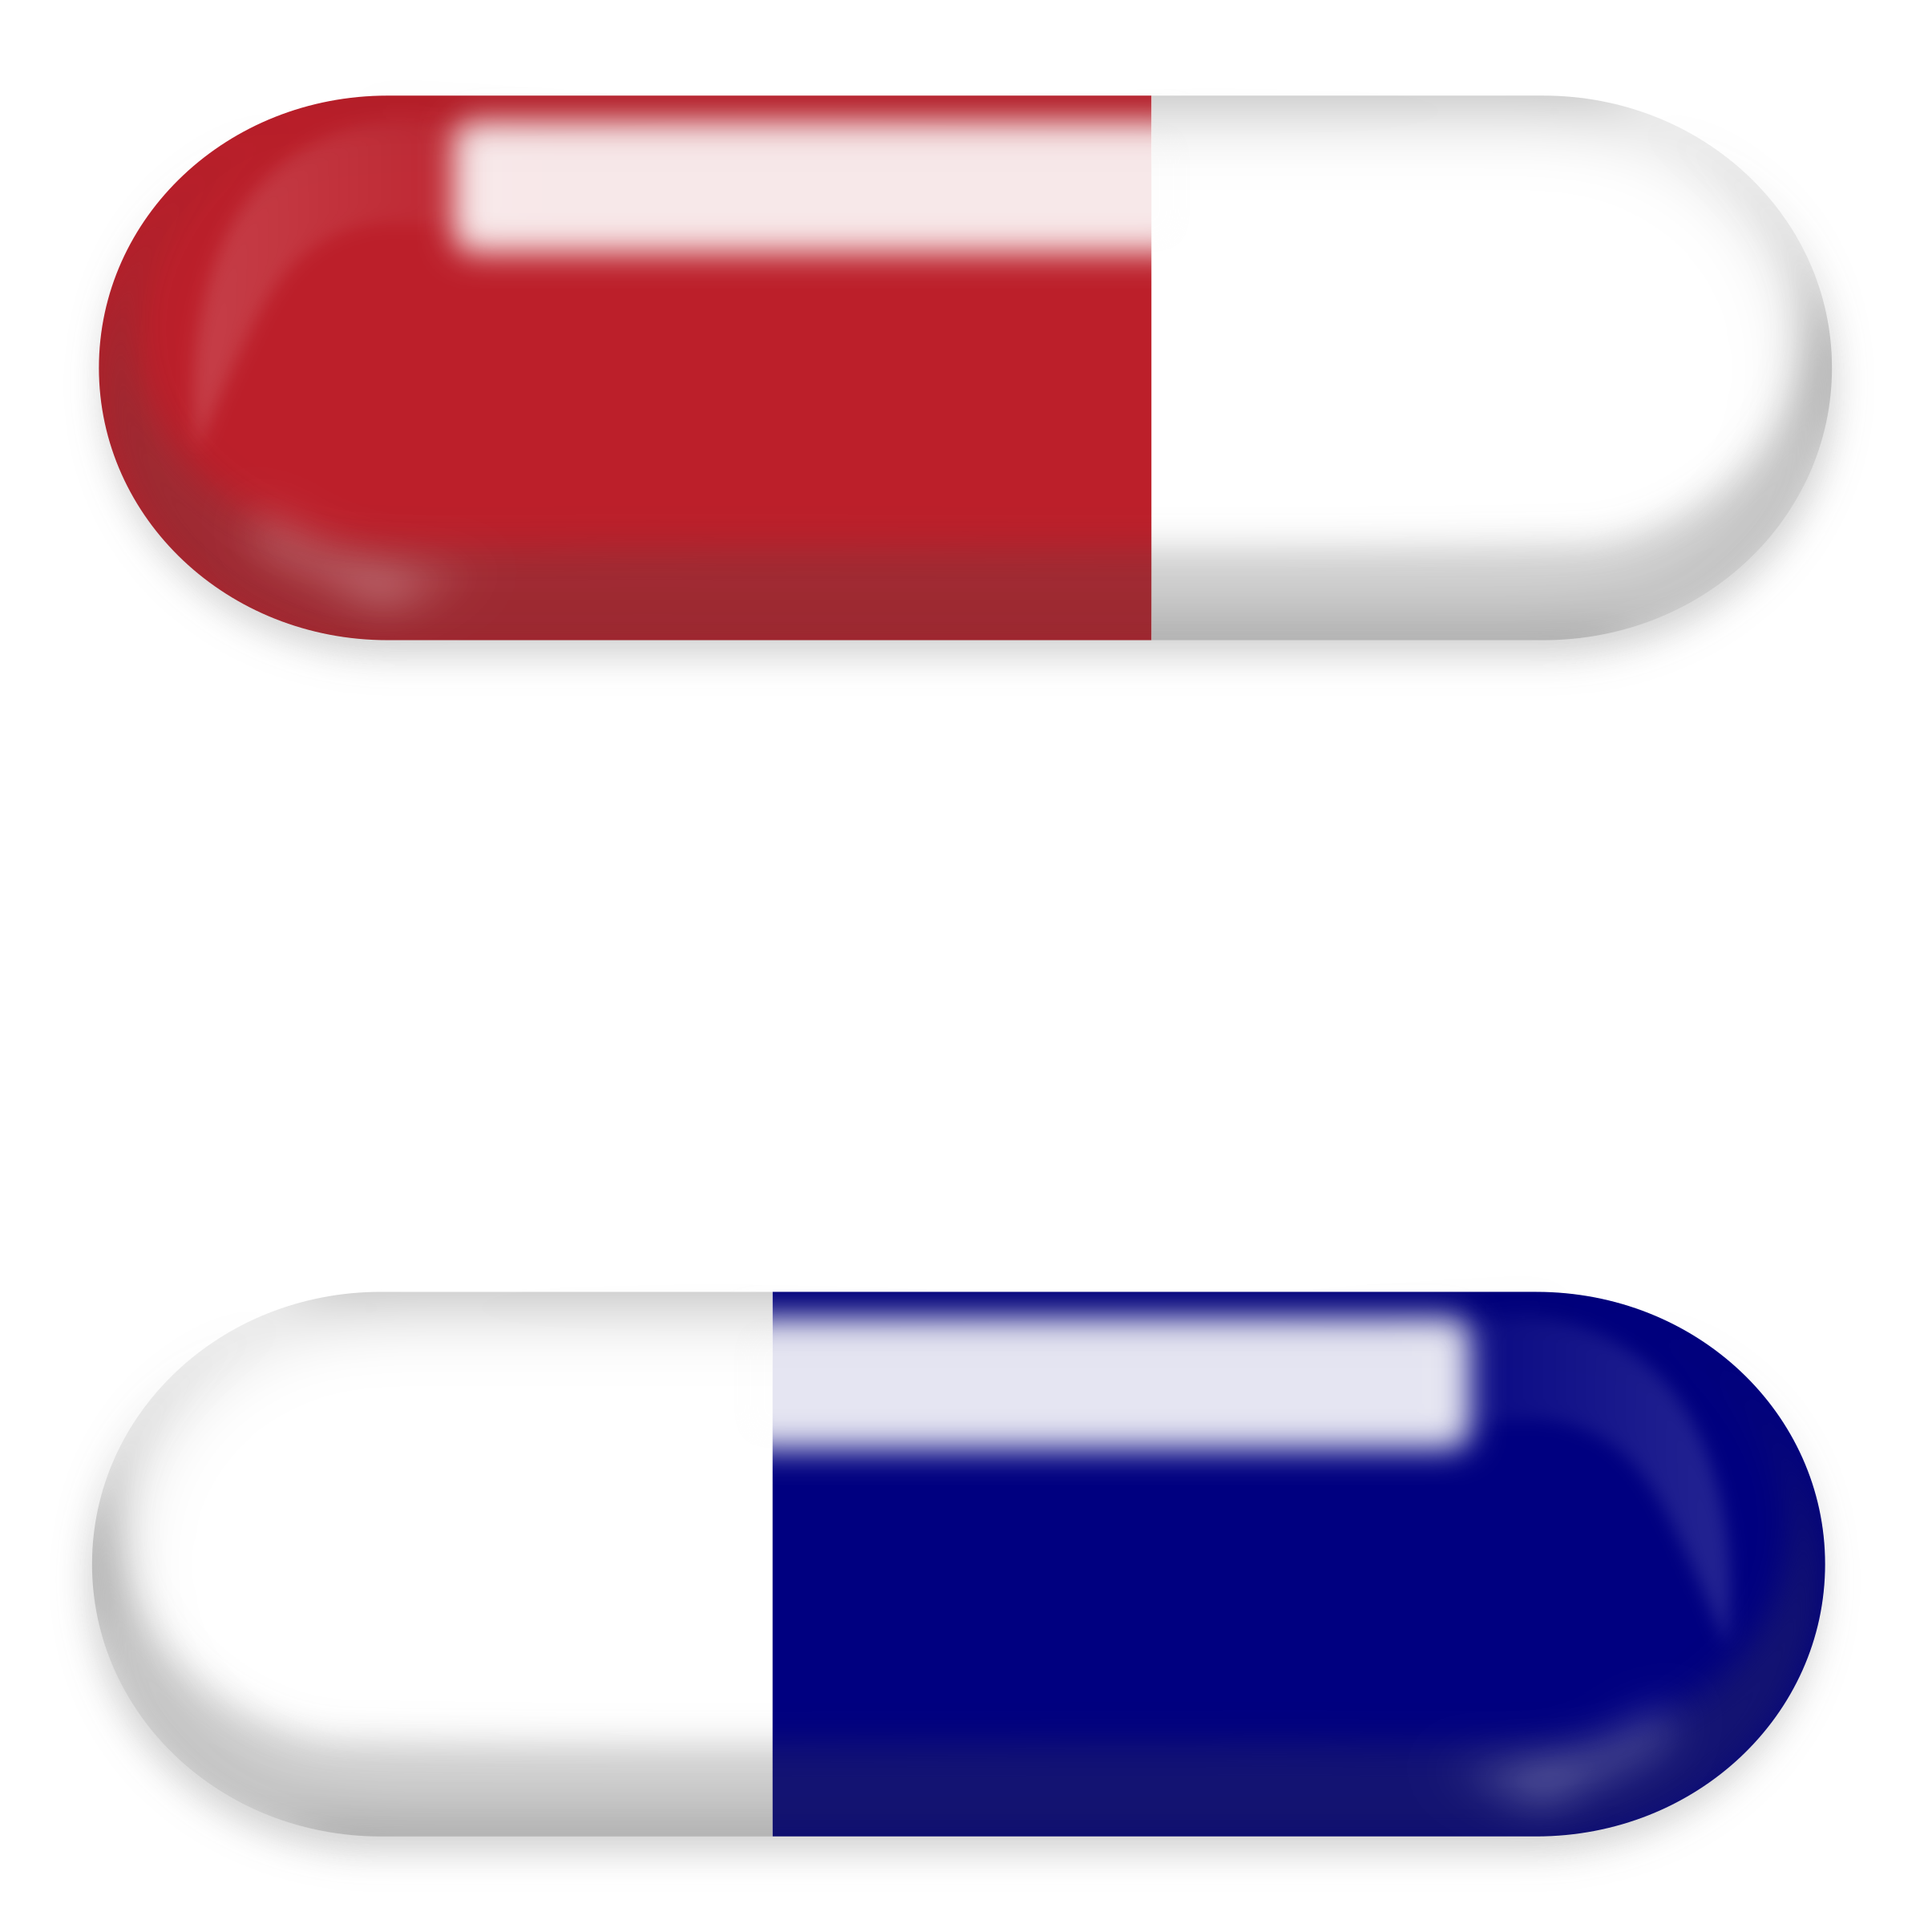 Pills clipart background Background transparent Pills PNG image